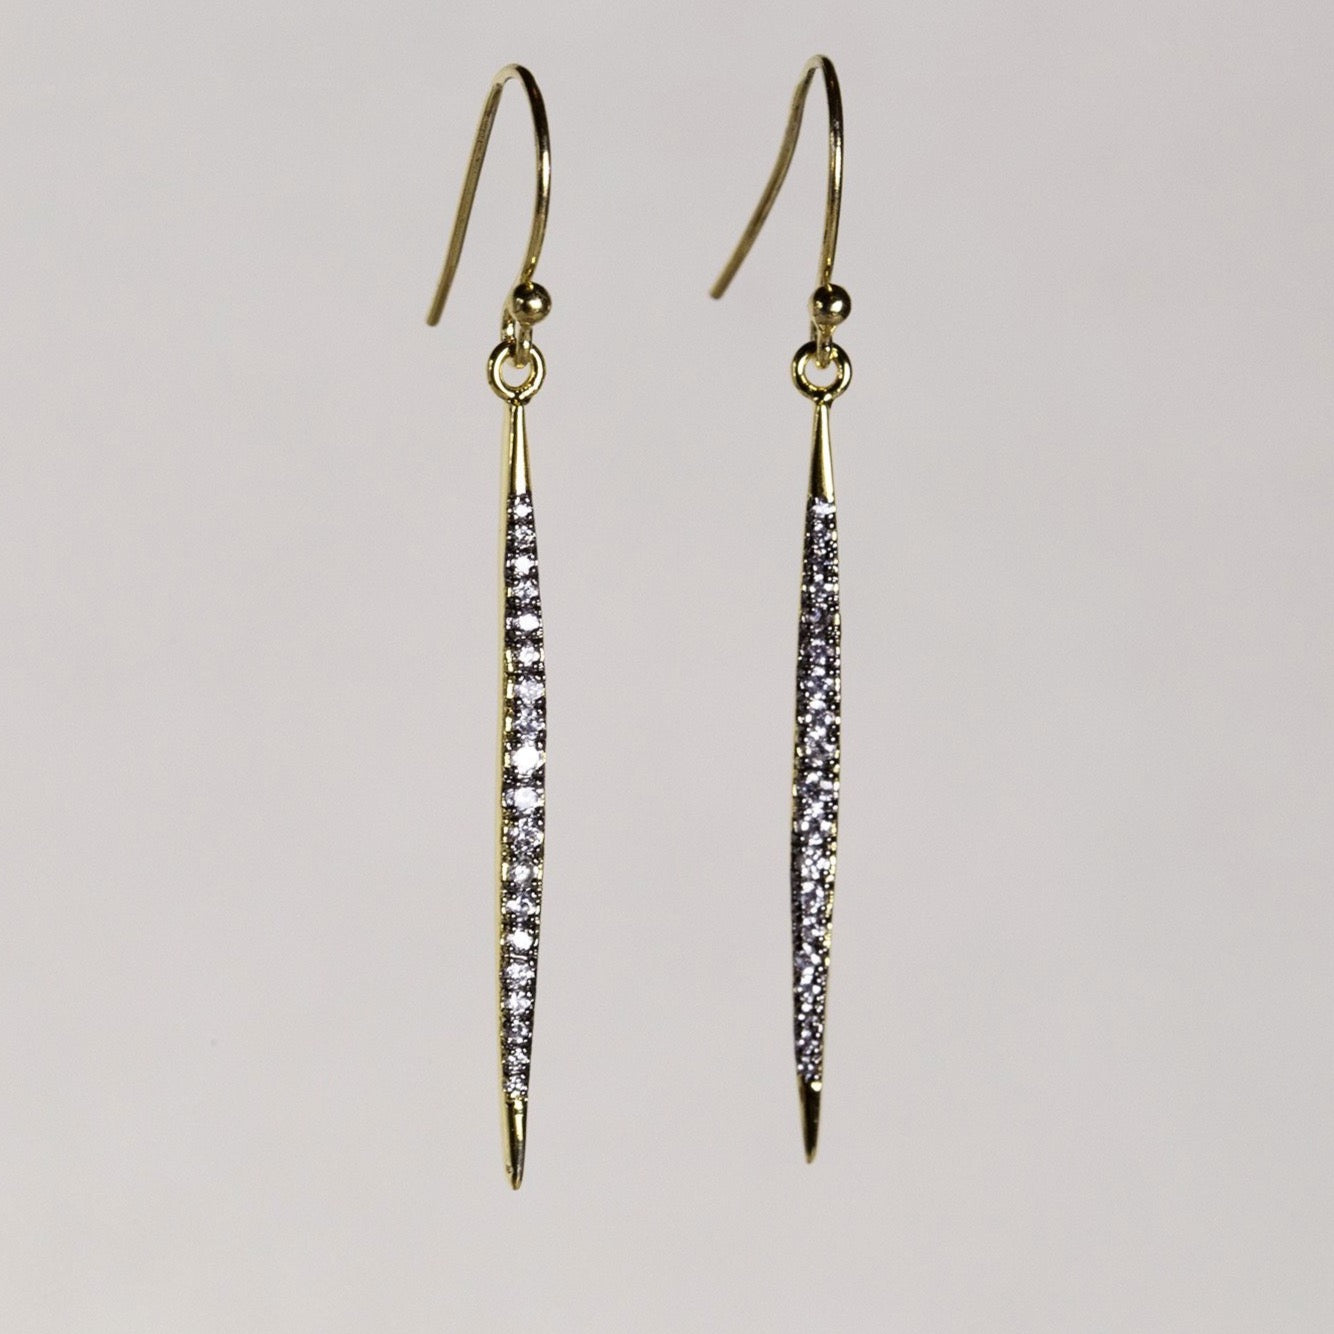 Tai fancy crystal bar drop earring in gold plated silver and cubic zirconia